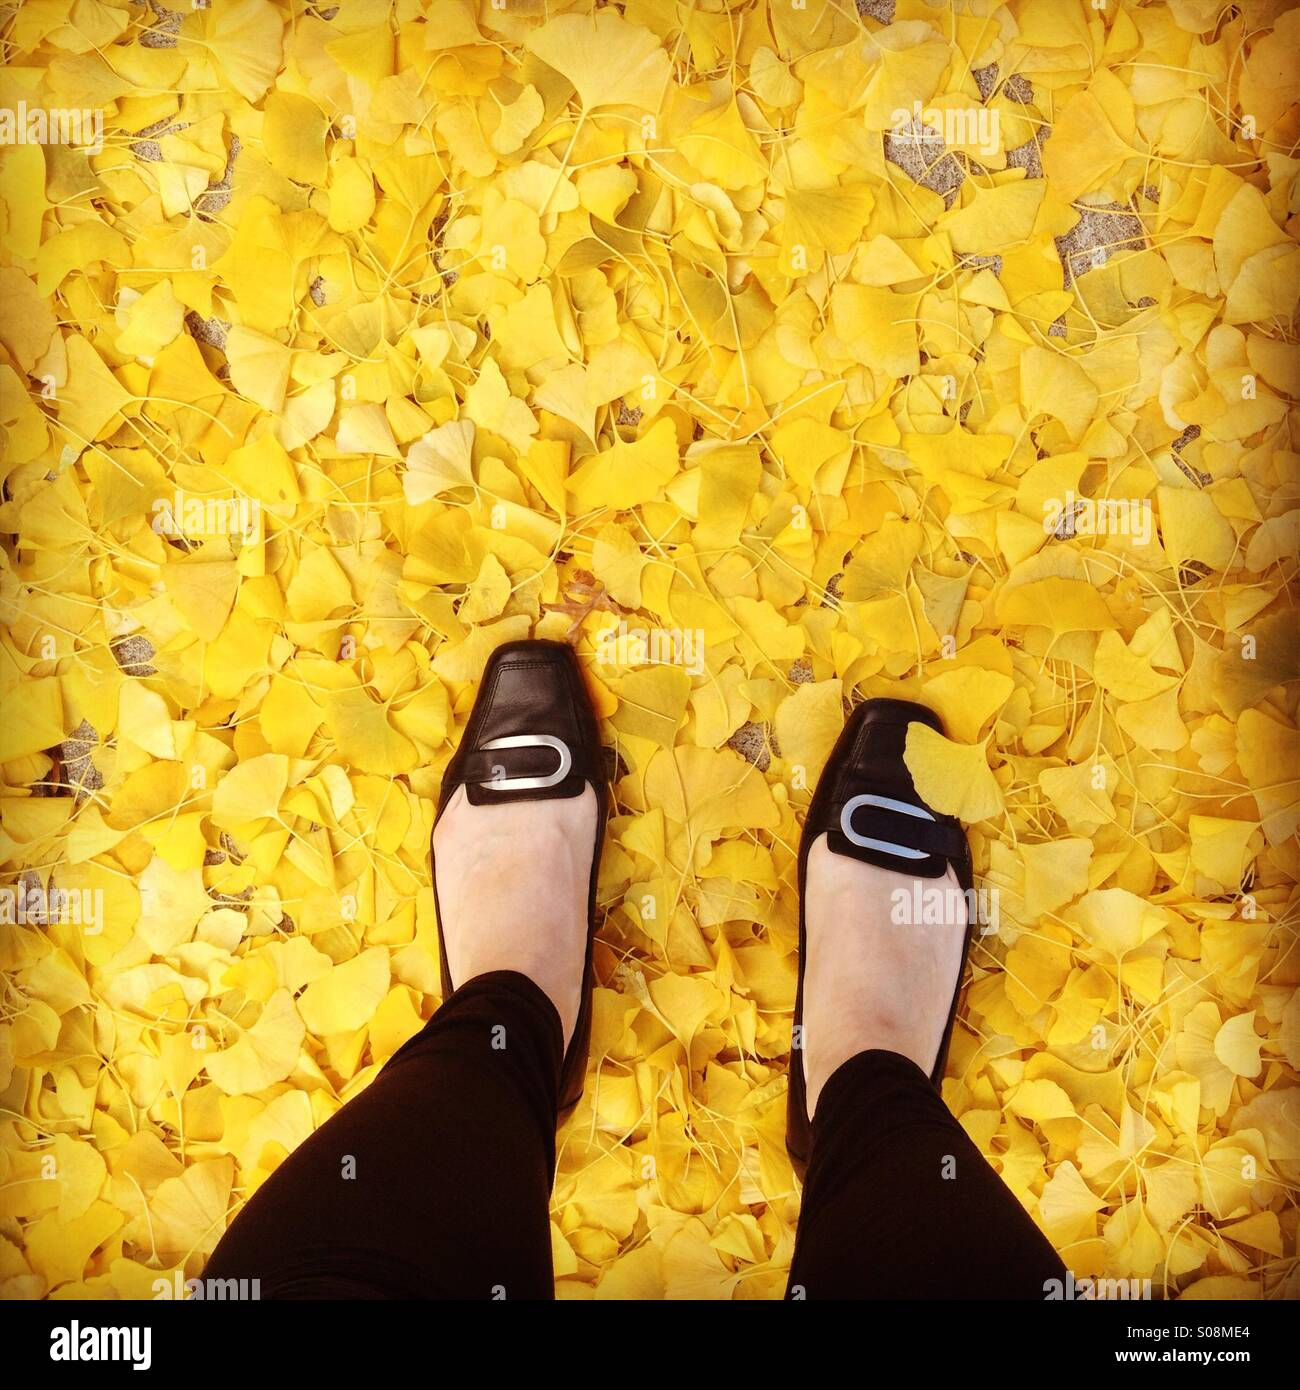 Woman's feet in a pile if yellow leaves - Stock Image